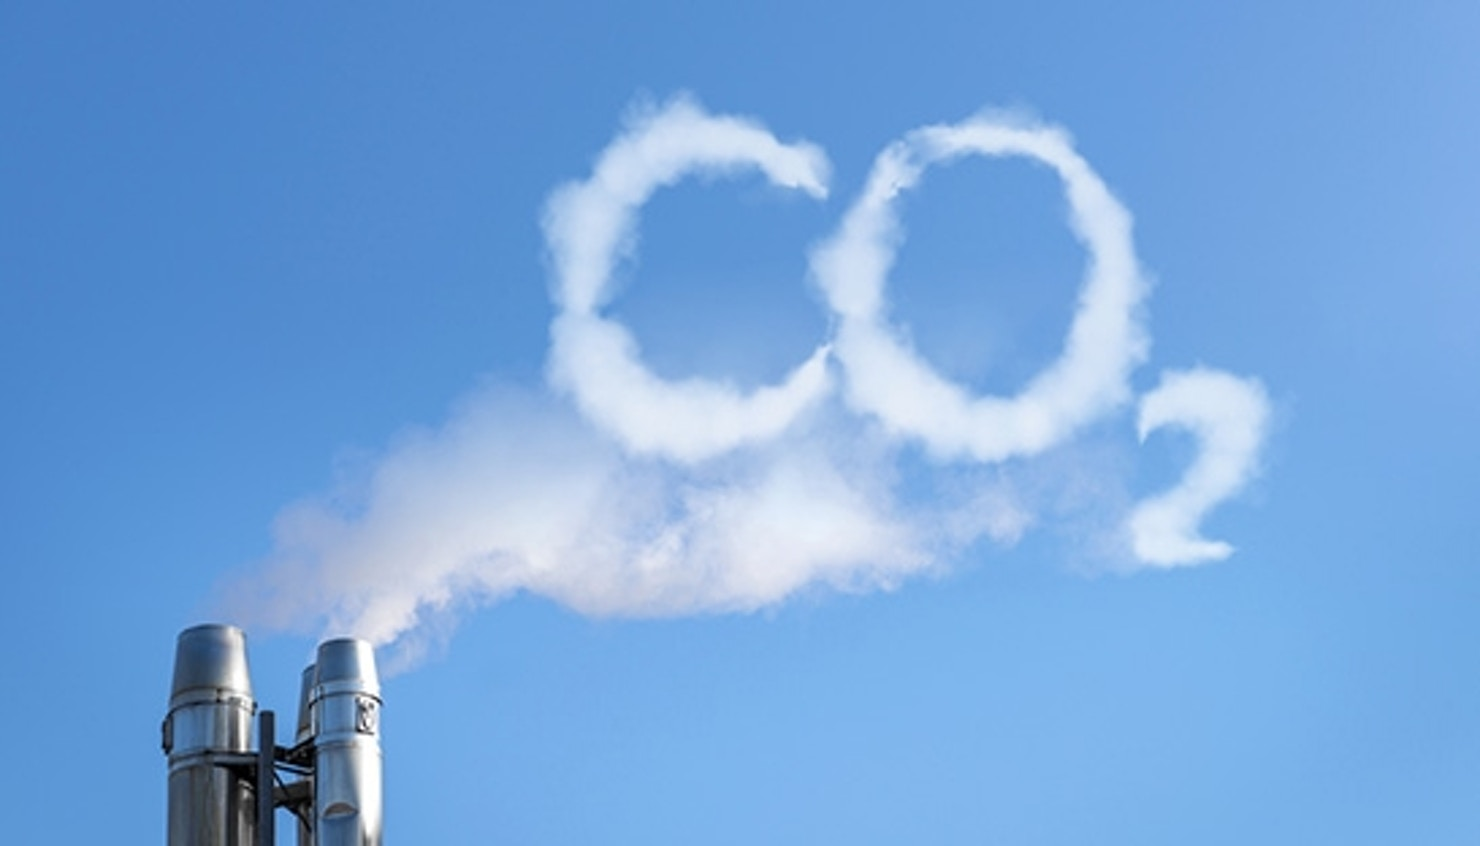 Consumers are aware of climate change but 1/3 not concerned about impact